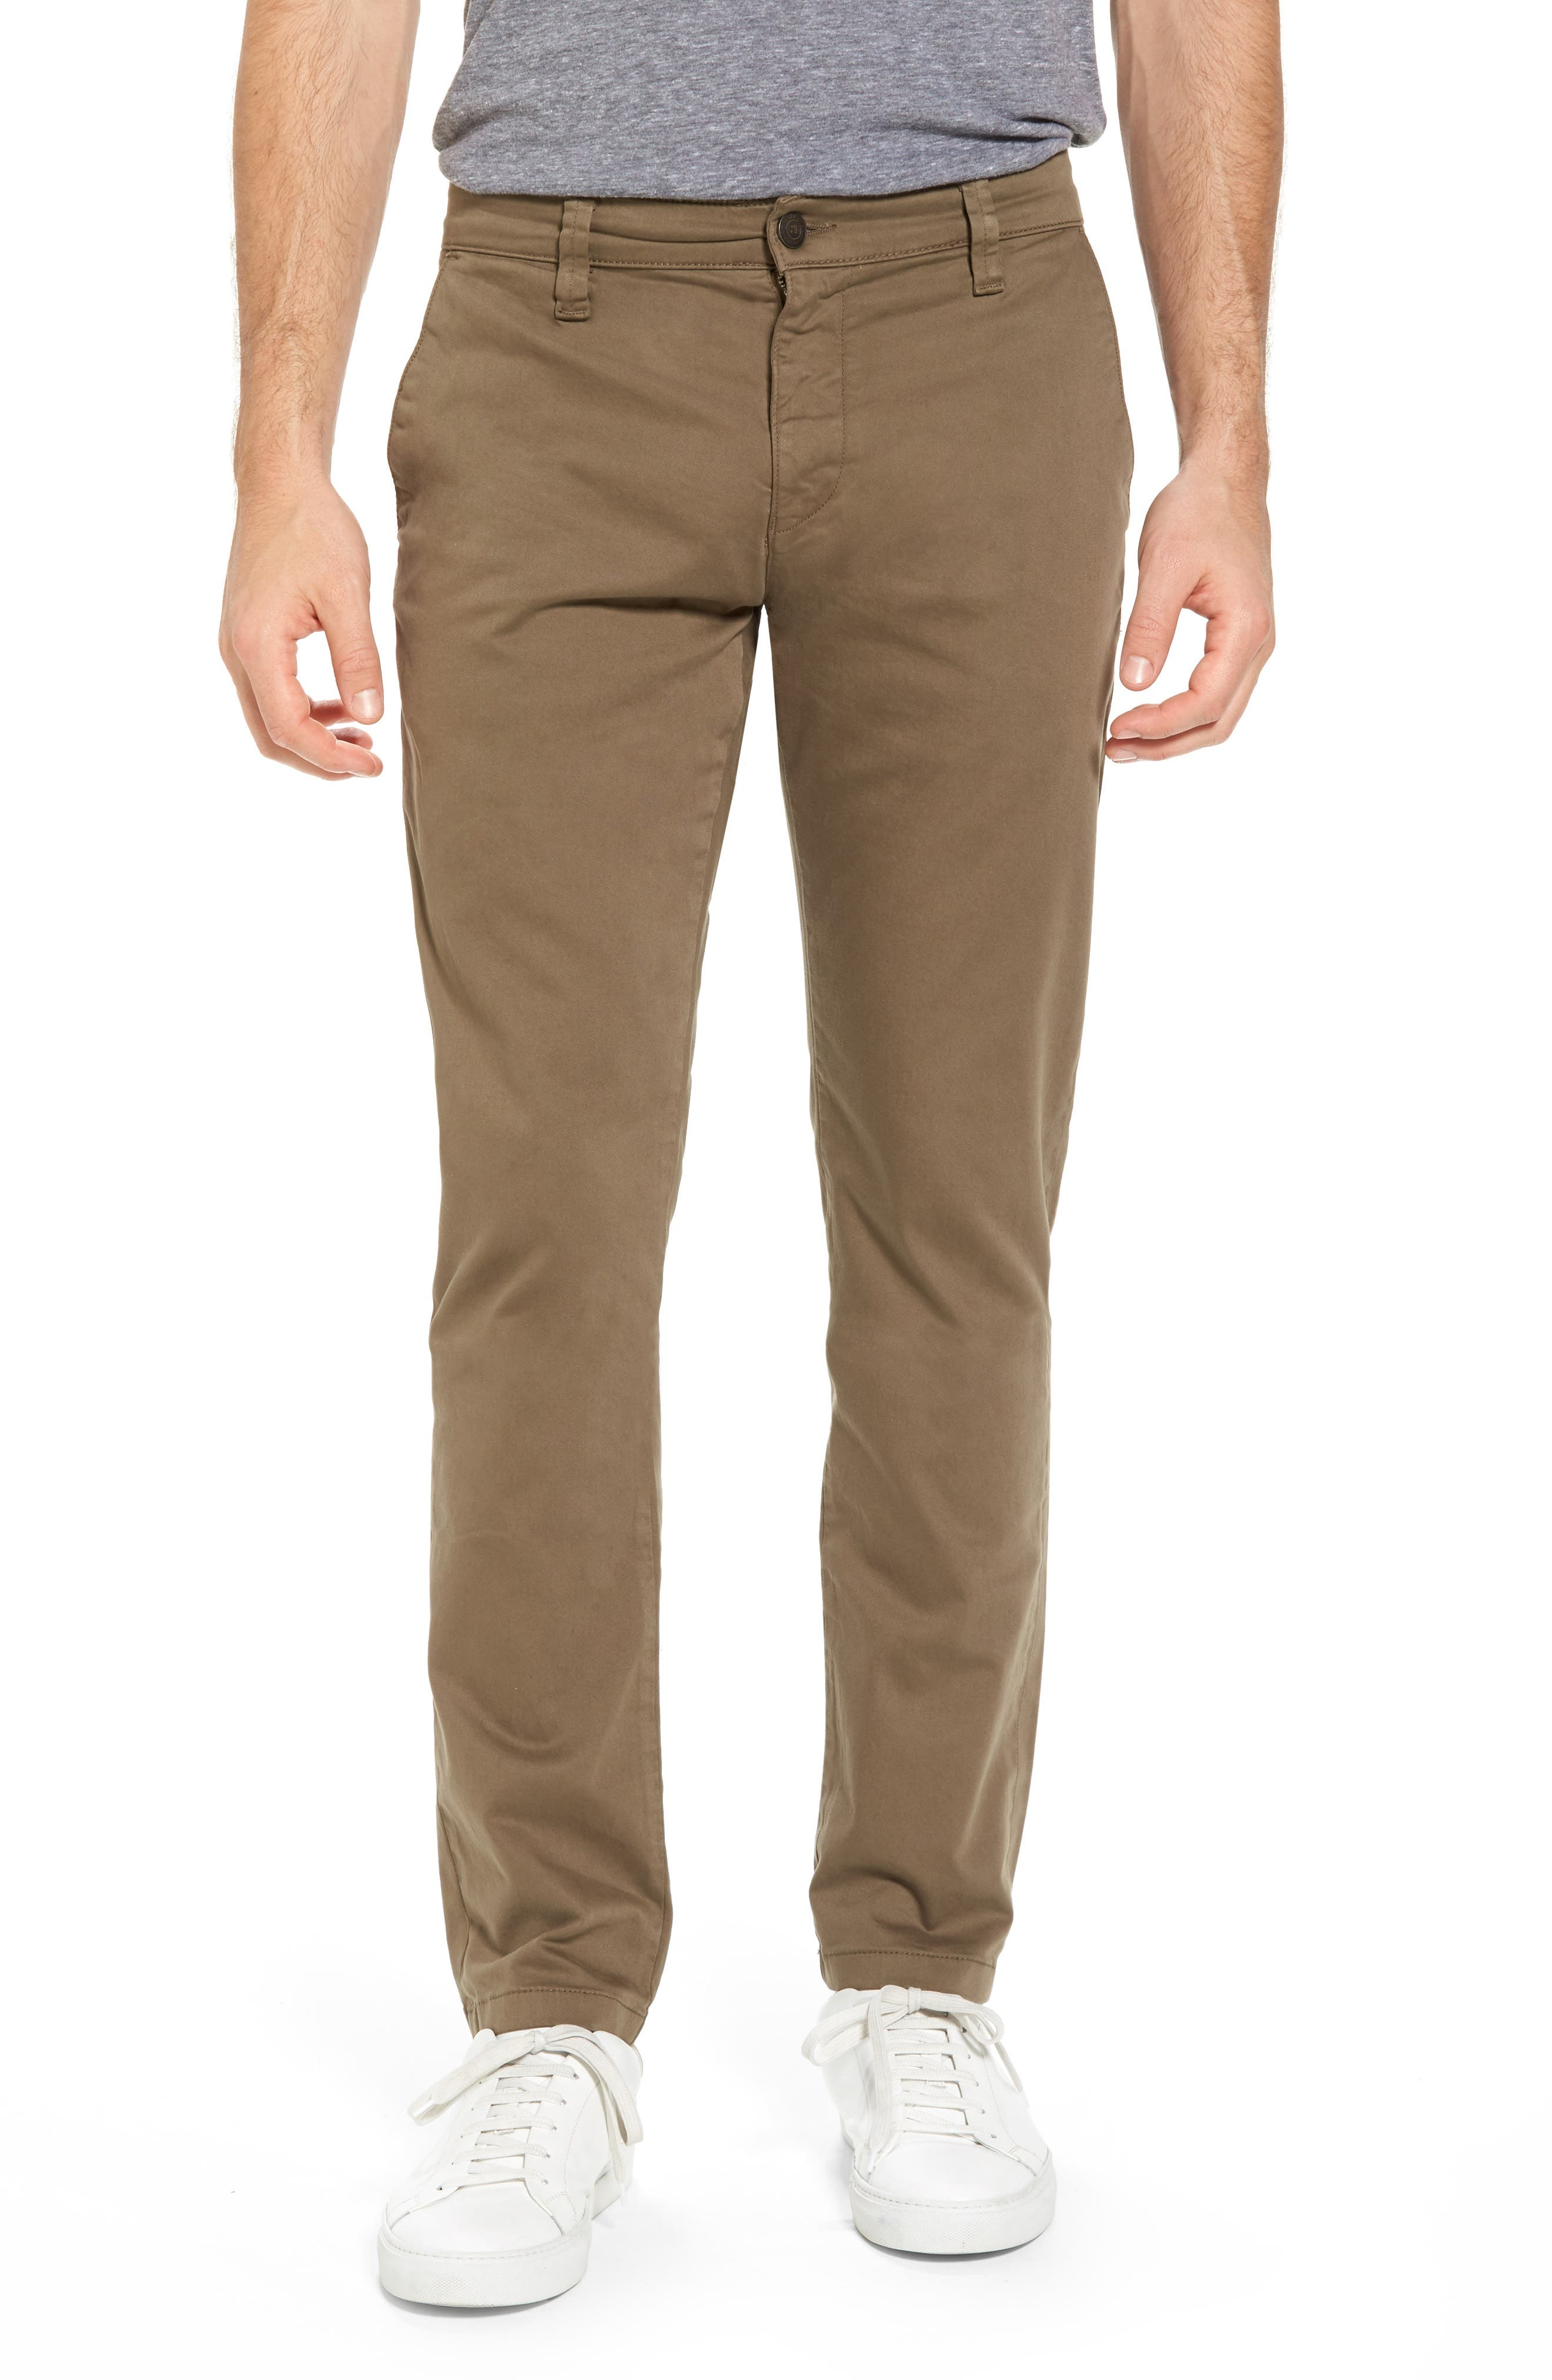 Johnny Twill Pants,                         Main,                         color, 250